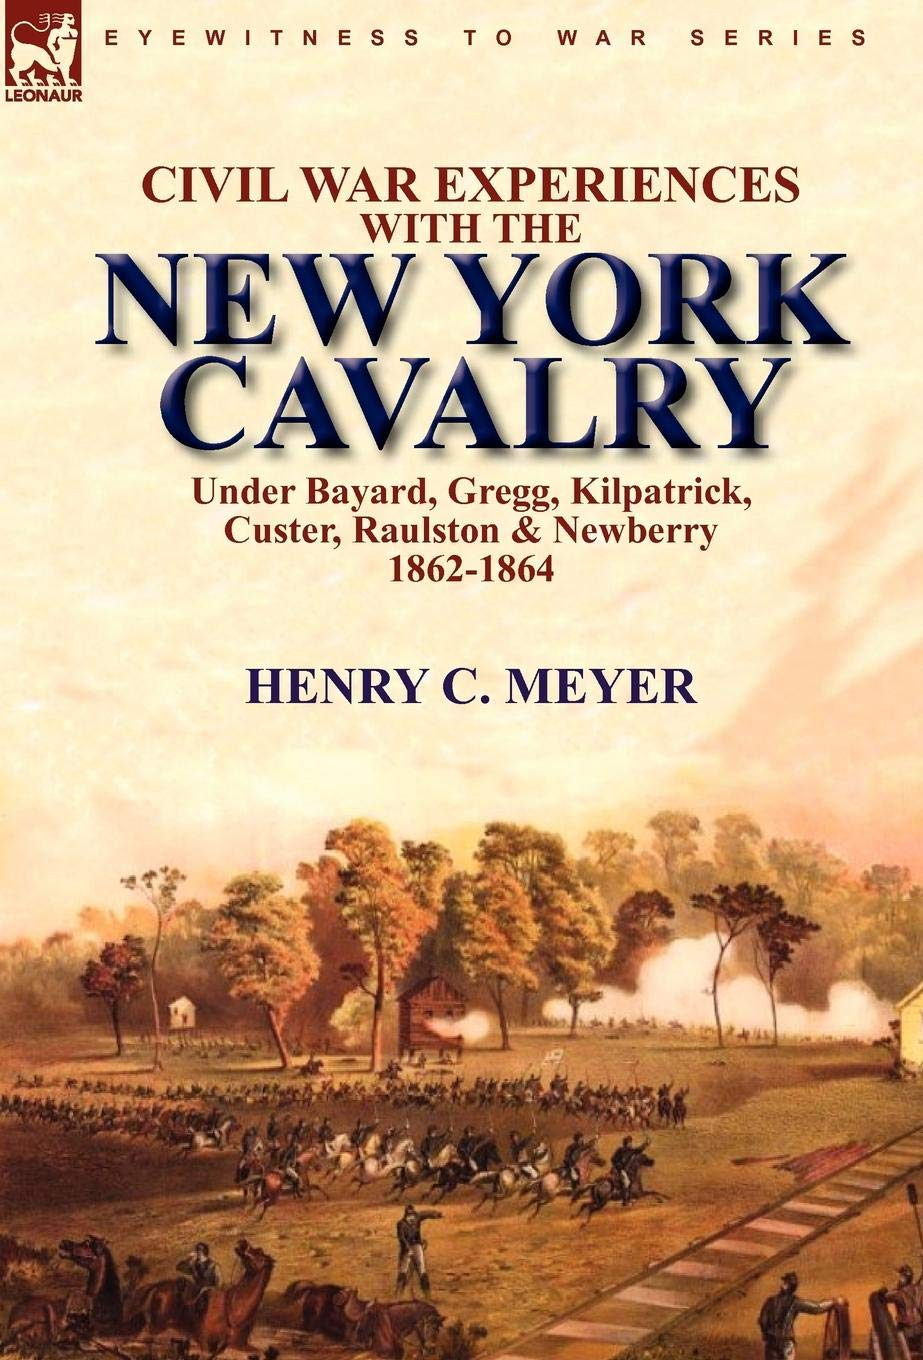 Download Civil War Experiences With the New York Cavalry Under Bayard, Gregg, Kilpatrick, Custer, Raulston & Newberry 1862-1864 ebook